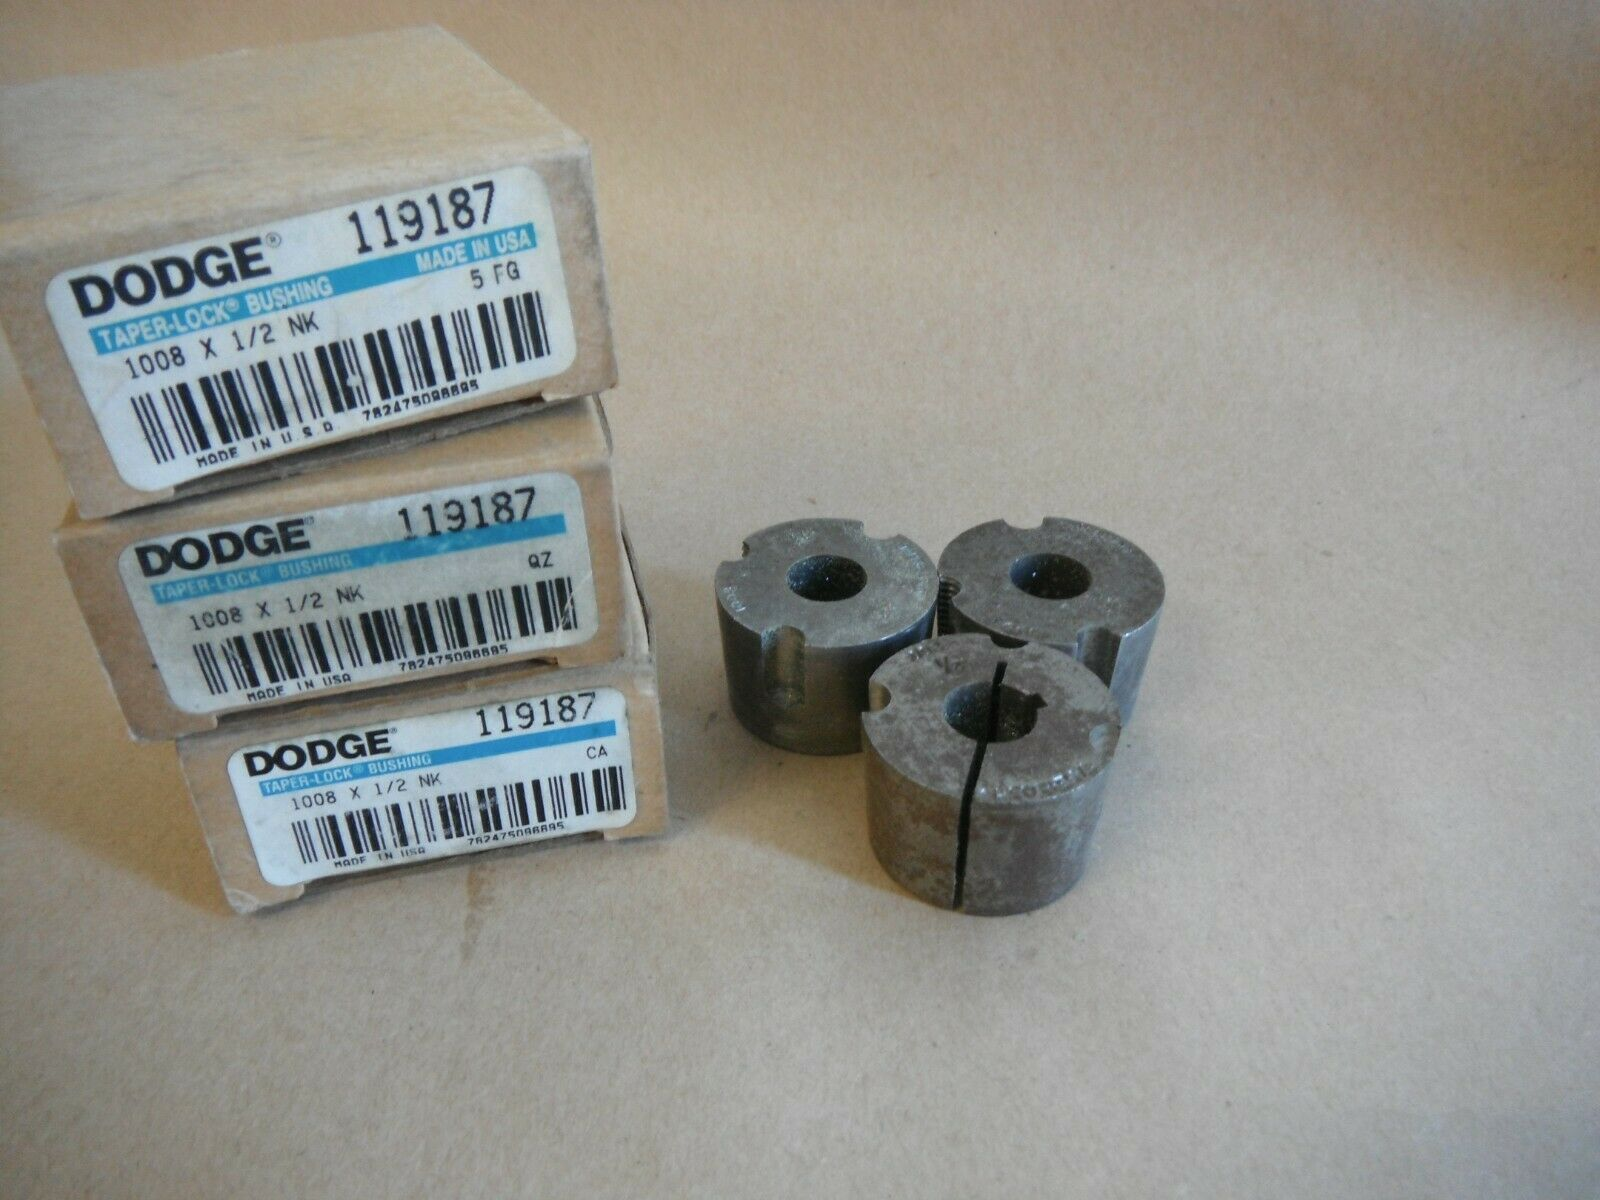 Primary image for (Qty 3) DODGE 119187 TAPER LOCK BUSHING 1008 X 1/2 NK